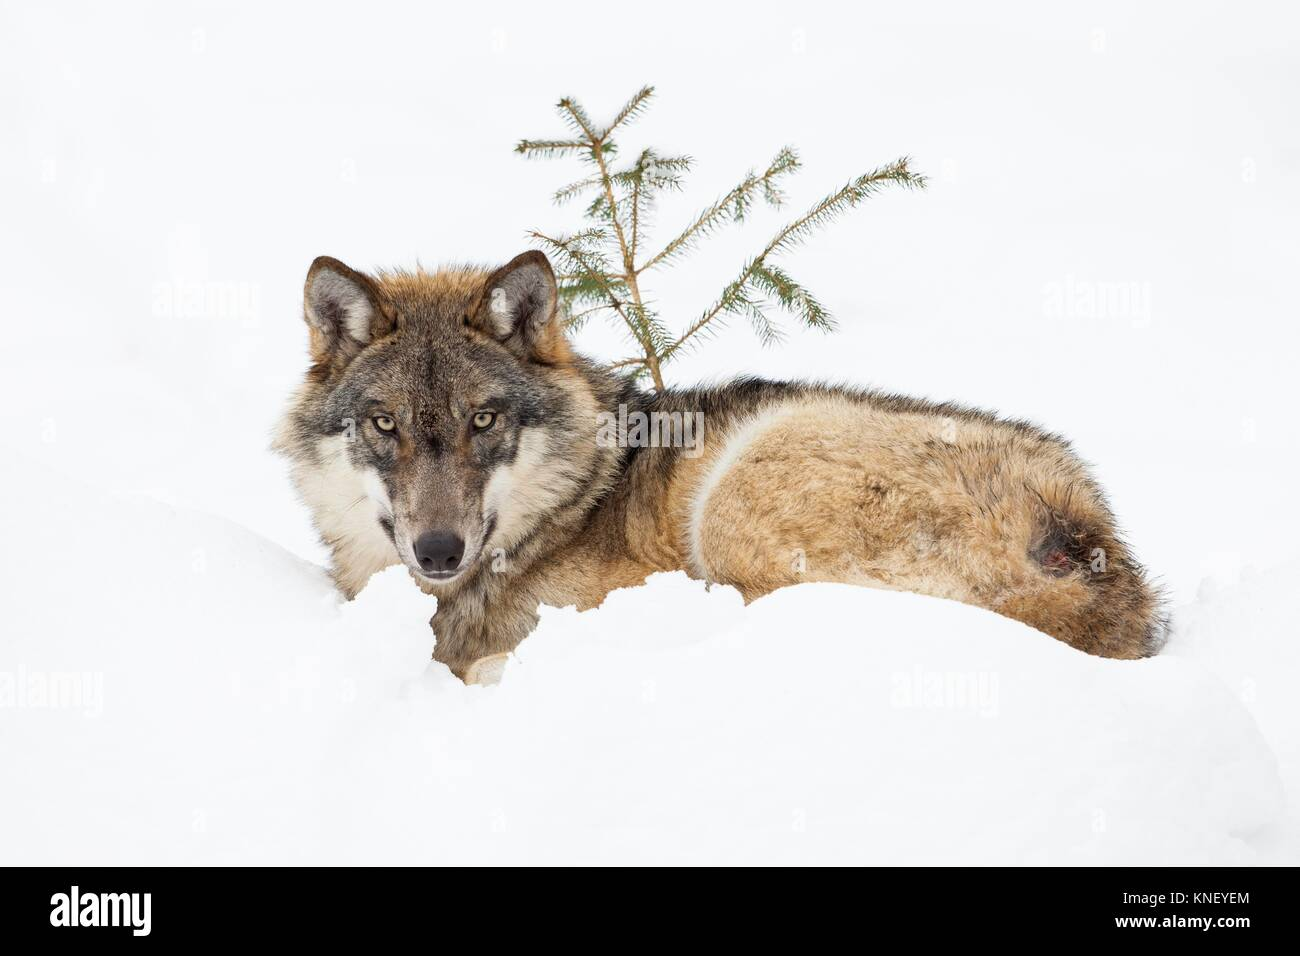 Wolf Germany wolf canis lupus bavarian forest national park germany stock